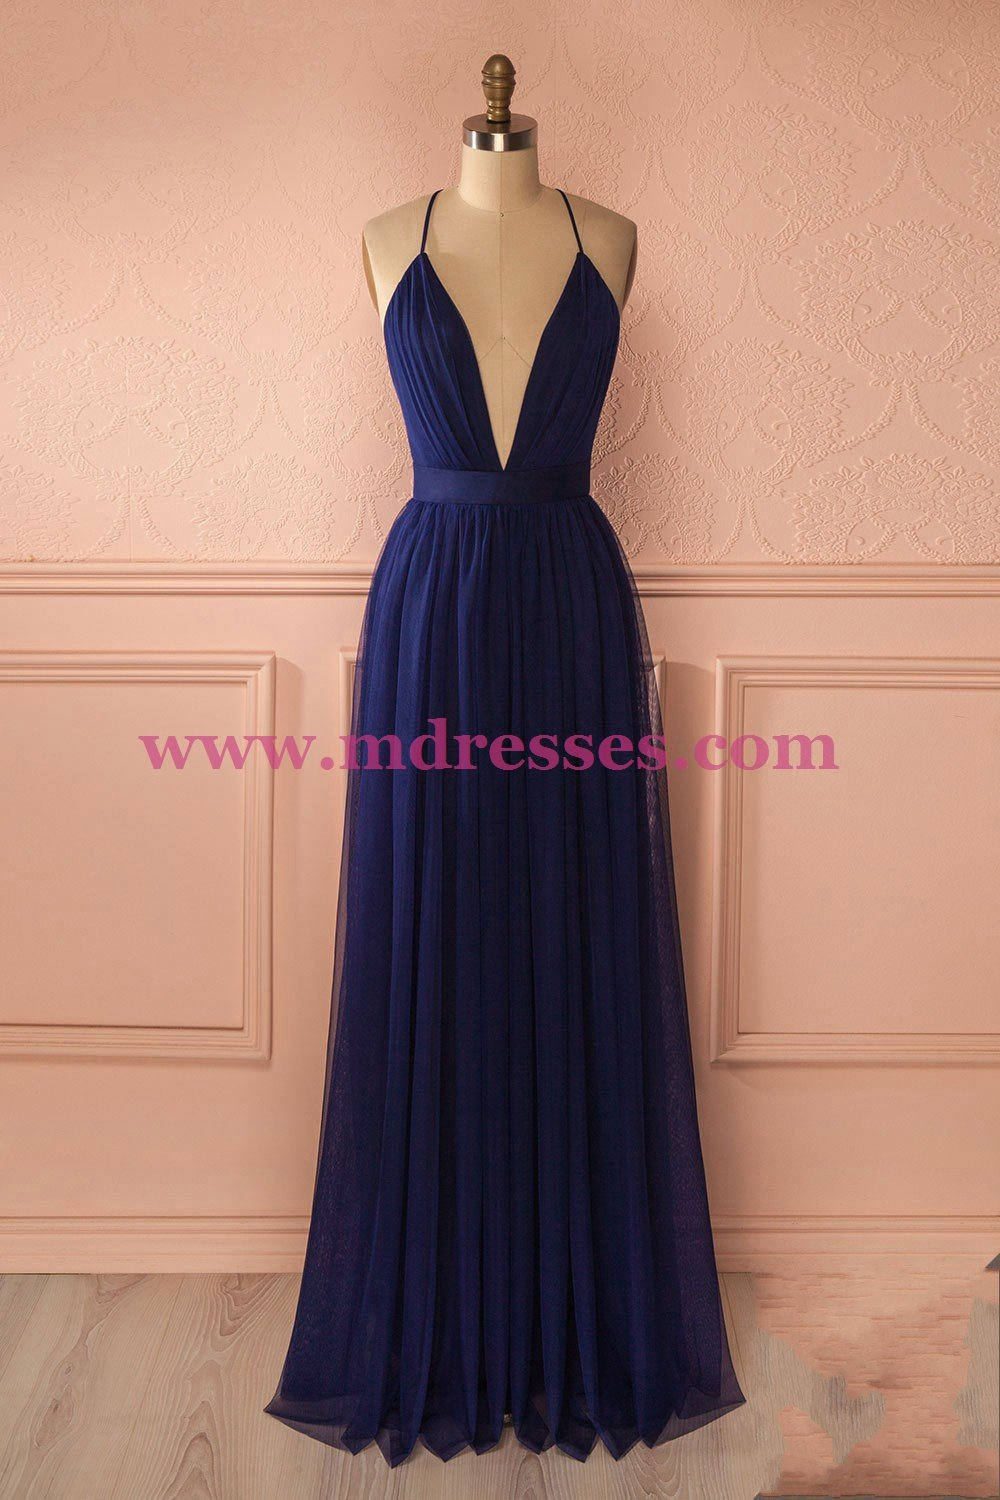 Sexy Long Blue Low V-Neck Simple Tulle Prom Party Dresses 562